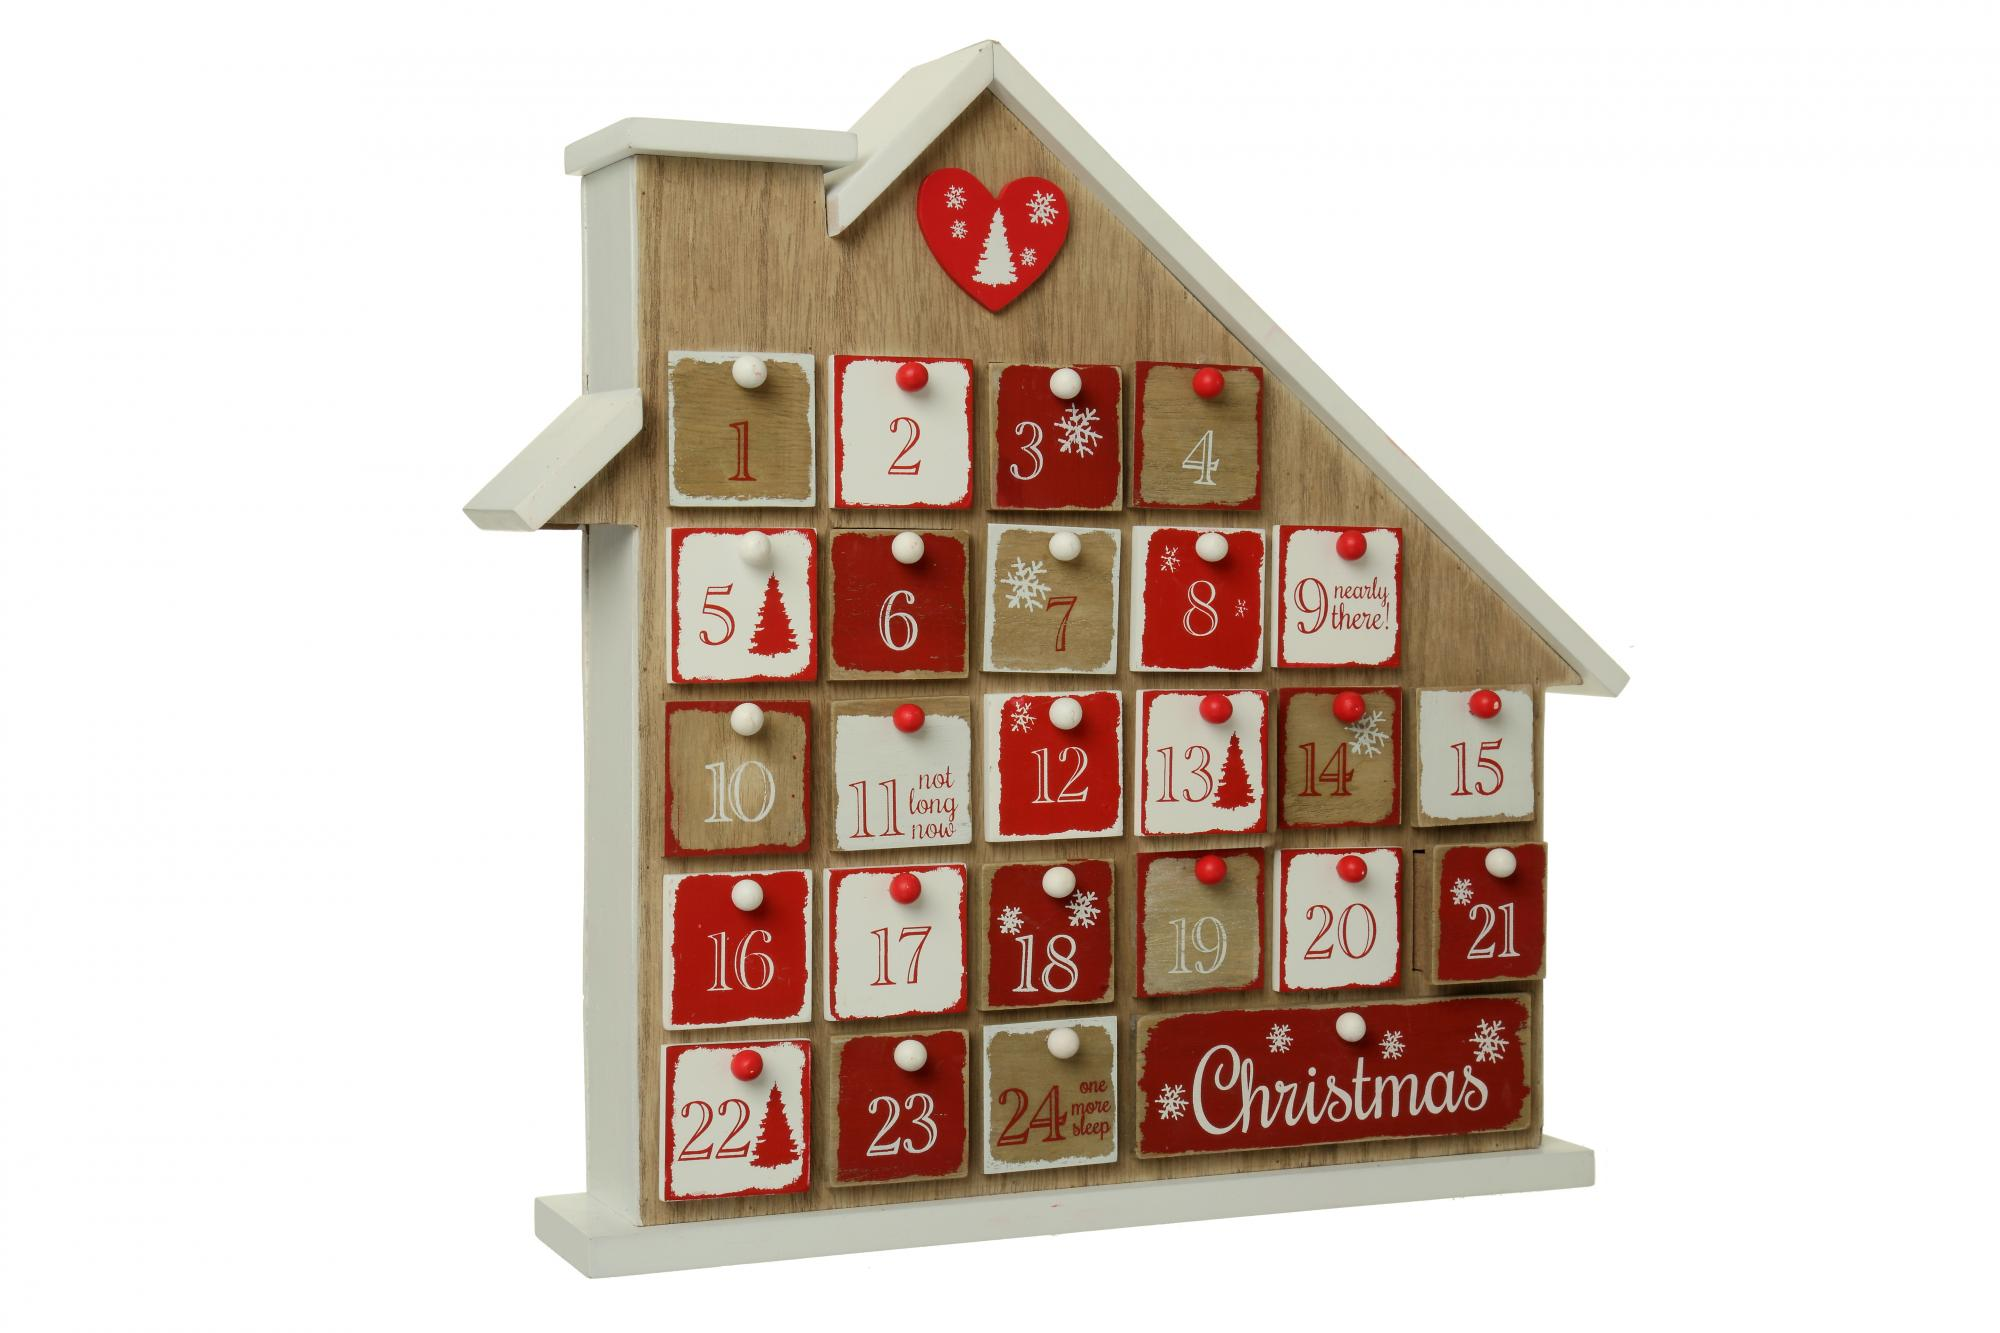 Christmas Advent House.Wooden Christmas Advent House Cancer Research Uk Online Shop